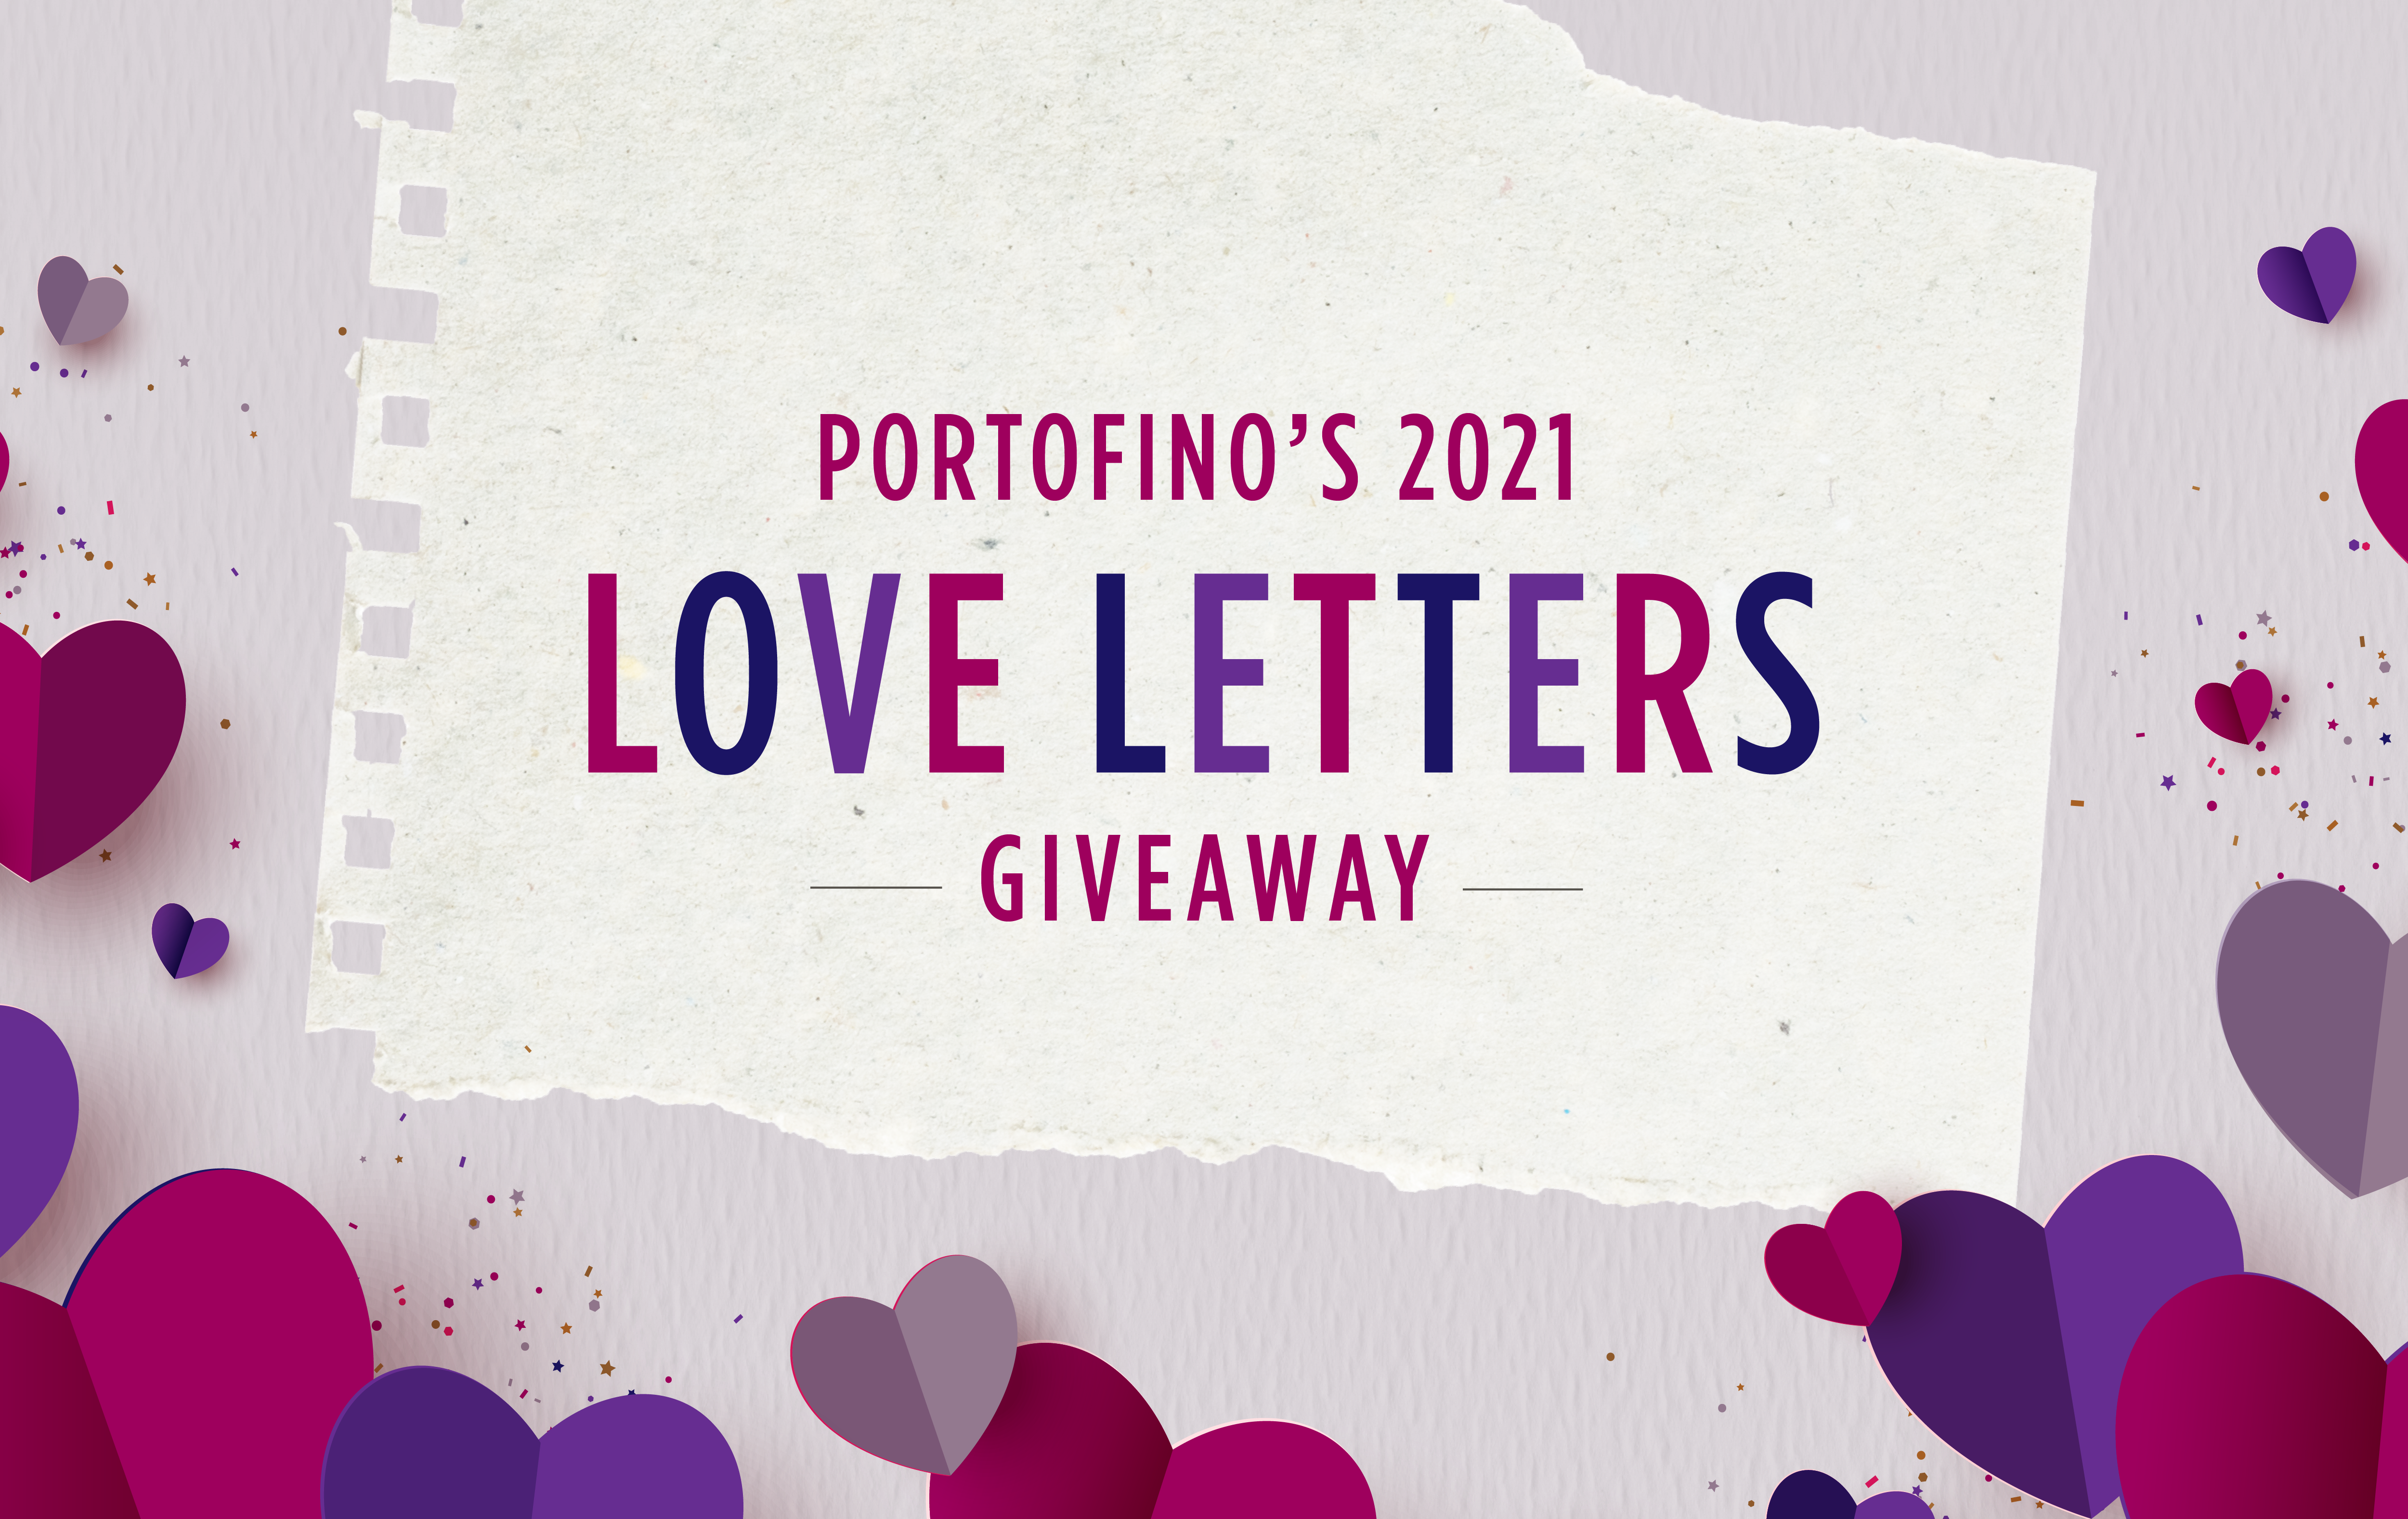 Love Letters Giveaway 2021